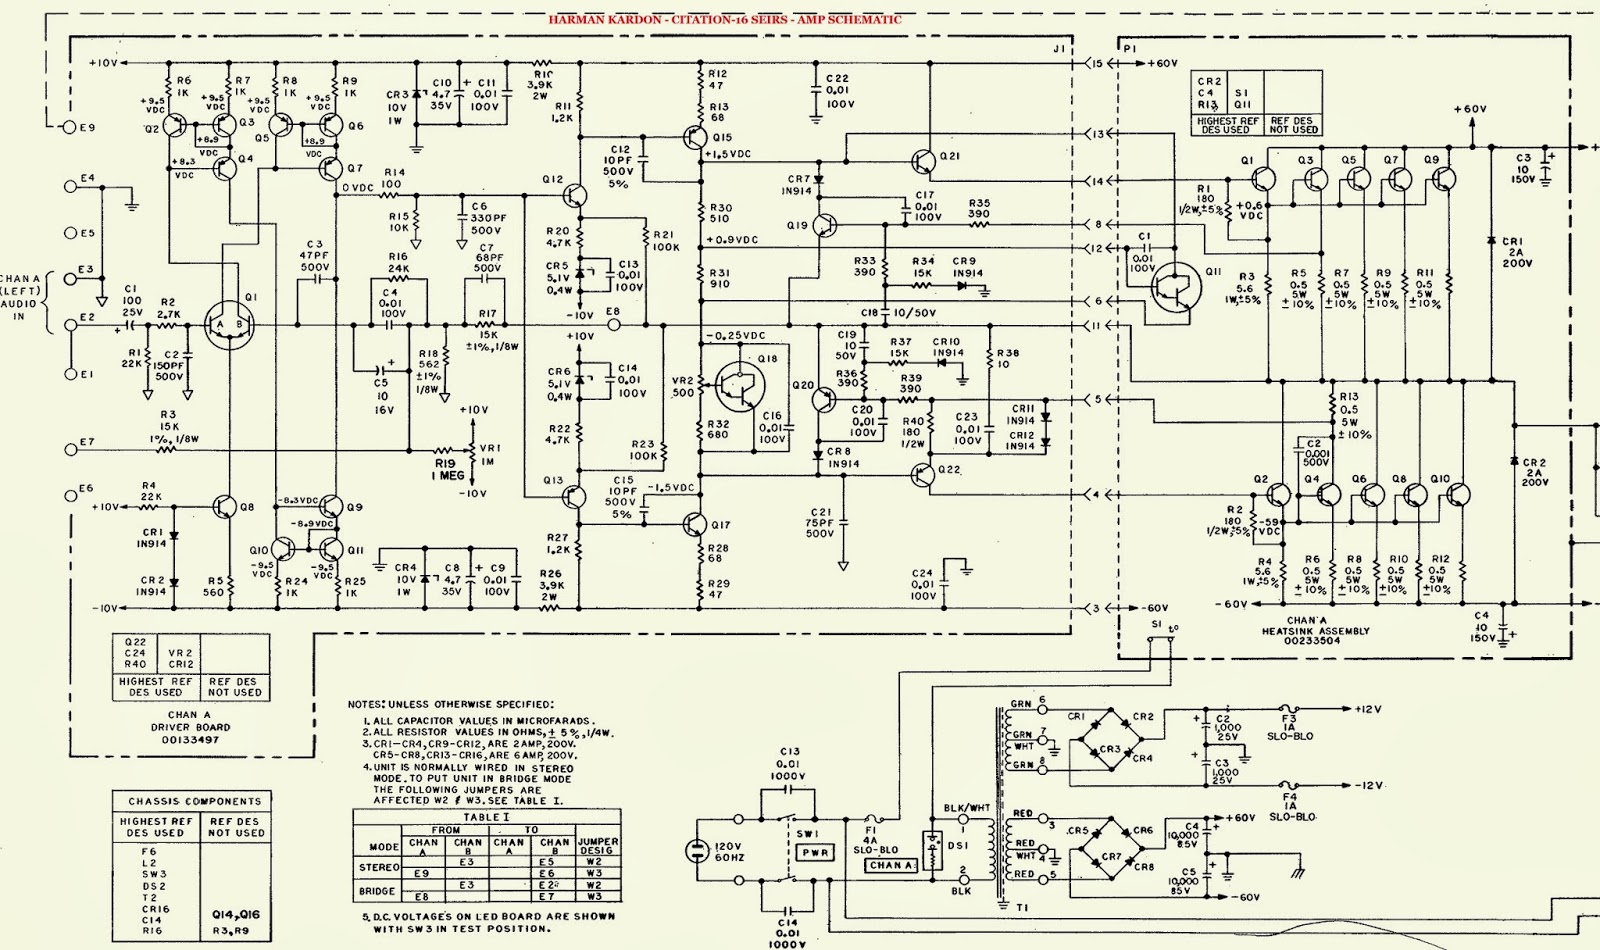 sum in wiring diagram stereo electro help harman kardon citation 16 series stereo